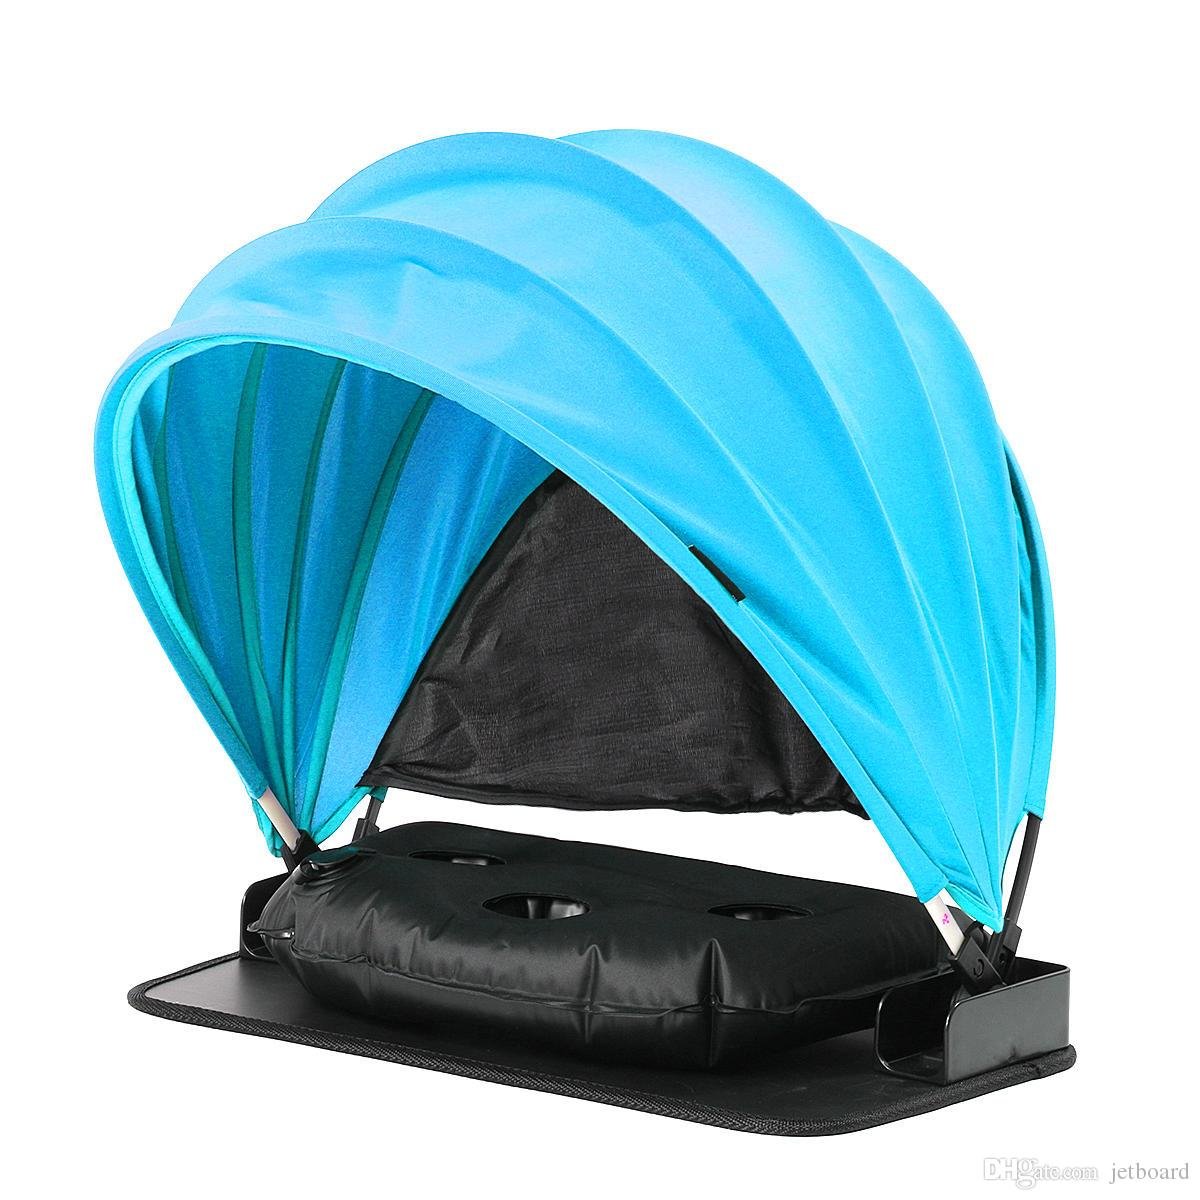 New Personal C&ing Shelter Face Protection Beach Shade Sun Shader For Beach Sunbath Sun Shade Beach Picnic Garden Buy Tents Beach Tent From Jetboard ...  sc 1 st  DHgate & New Personal Camping Shelter Face Protection Beach Shade Sun Shader ...